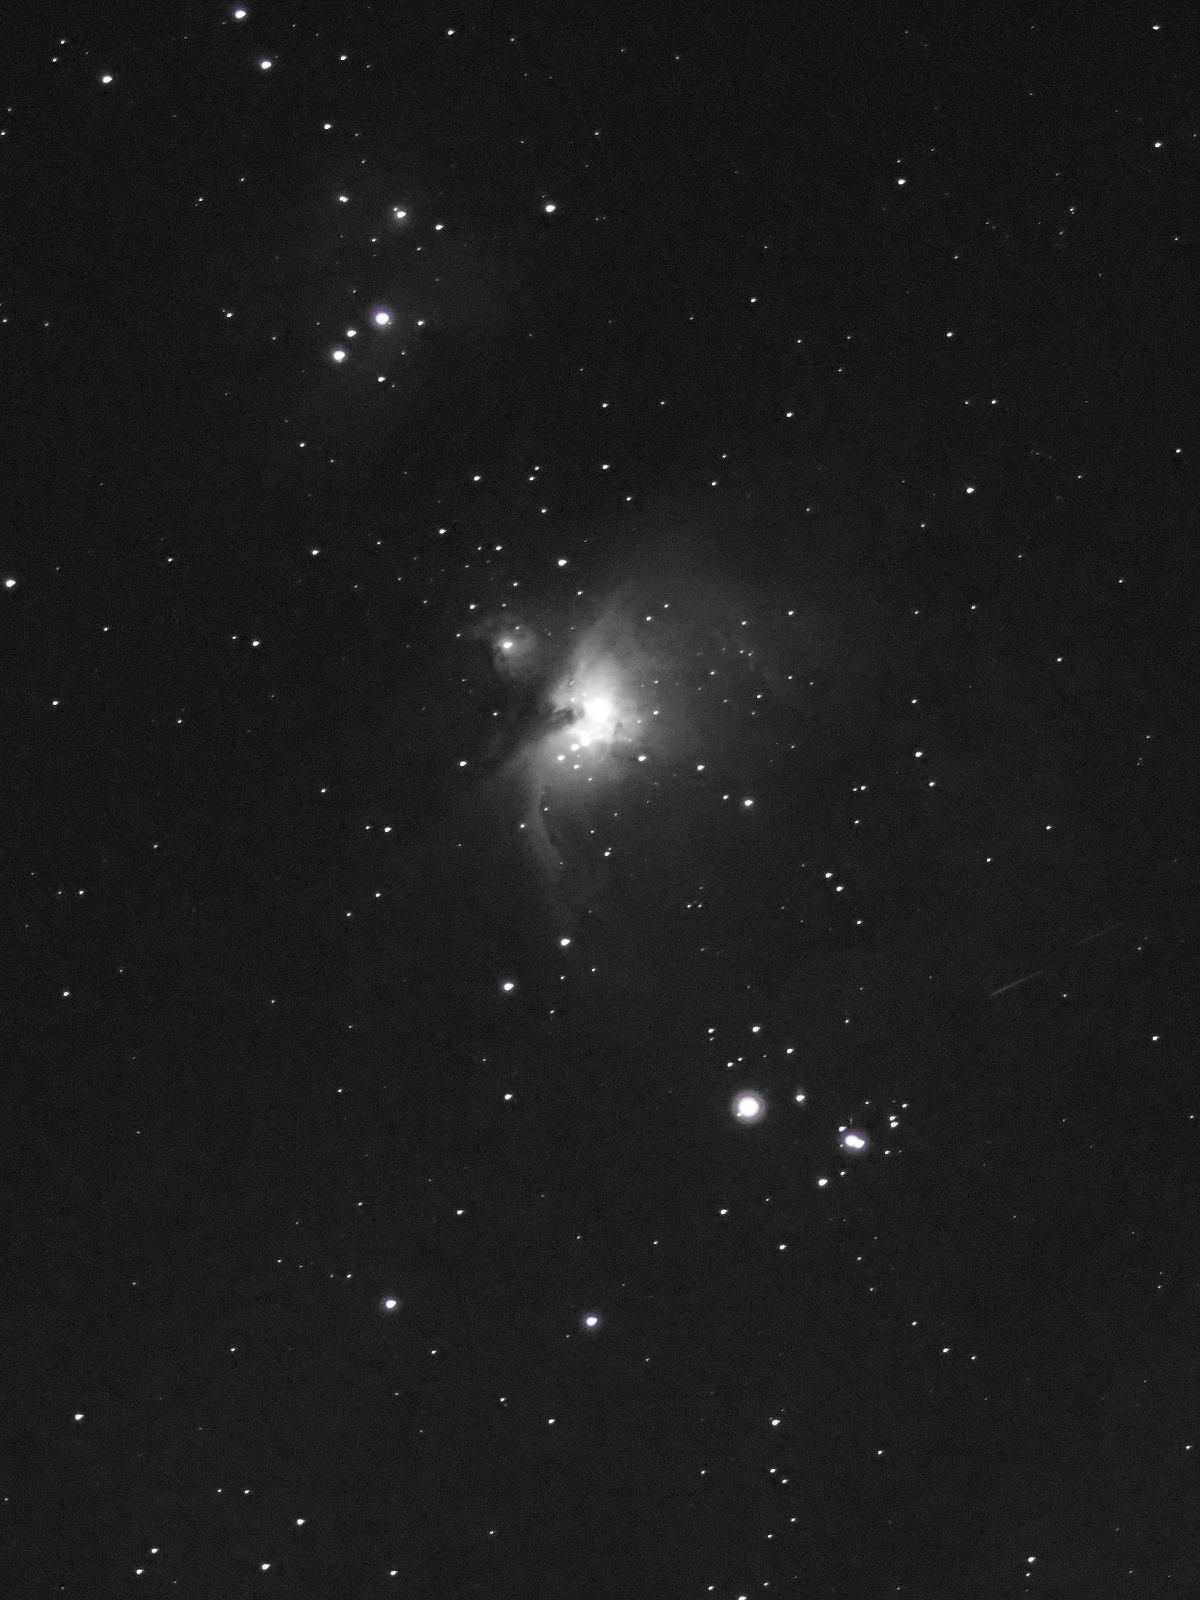 Photo of the Orion Nebula - kc-em100164b-